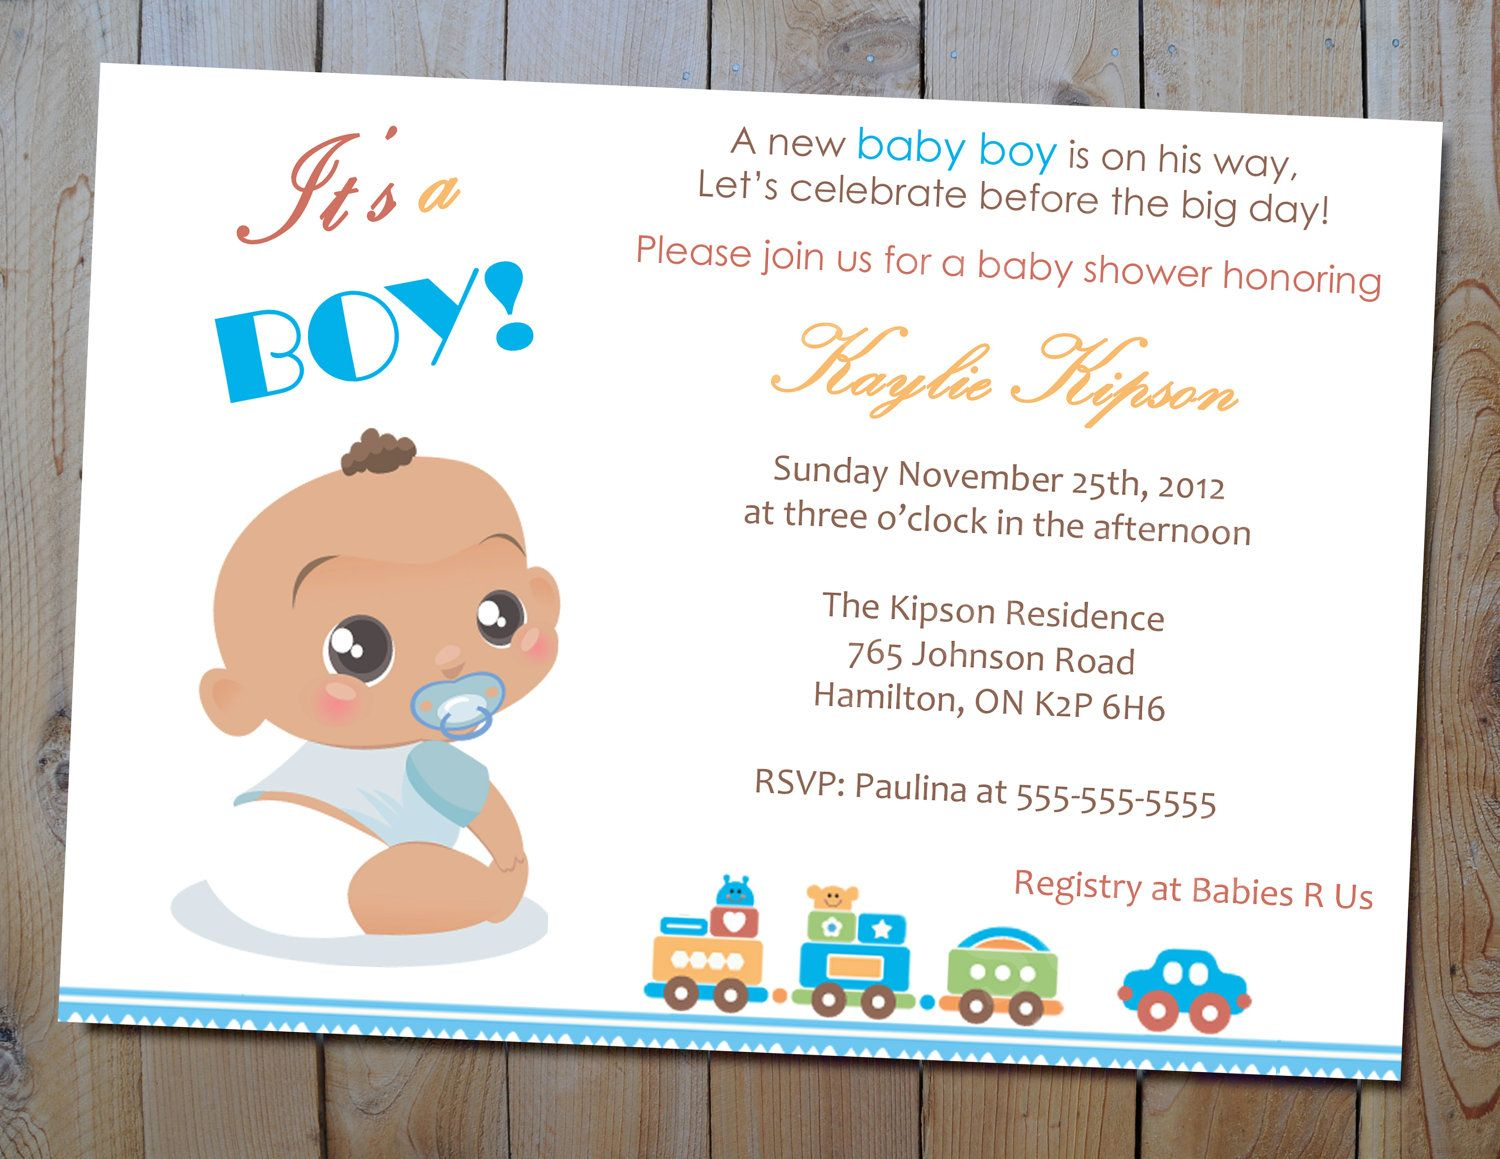 baby boy shower invitation | baby shower invitation card, Baby shower invitations